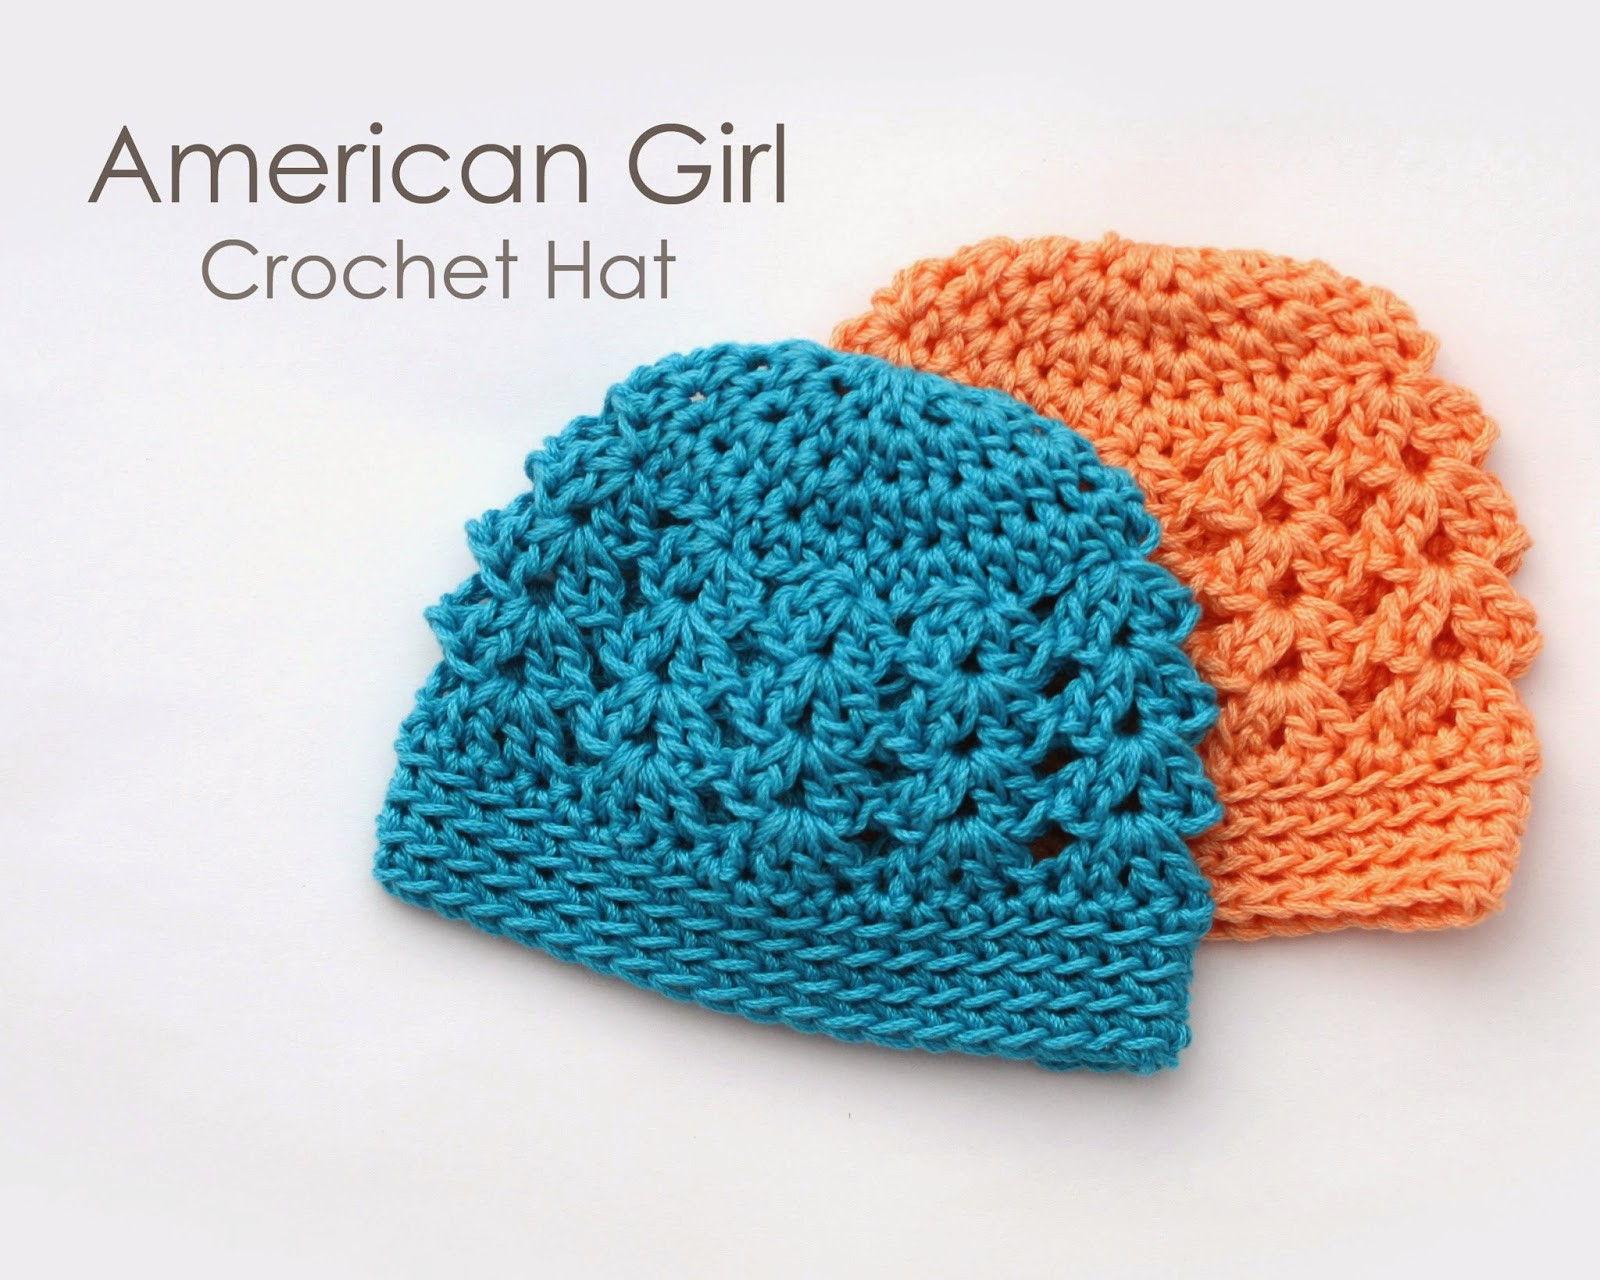 Crochet Tutorial New Little Abbee Tutorial American Girl Crochet Hat Of Wonderful 48 Ideas Crochet Tutorial